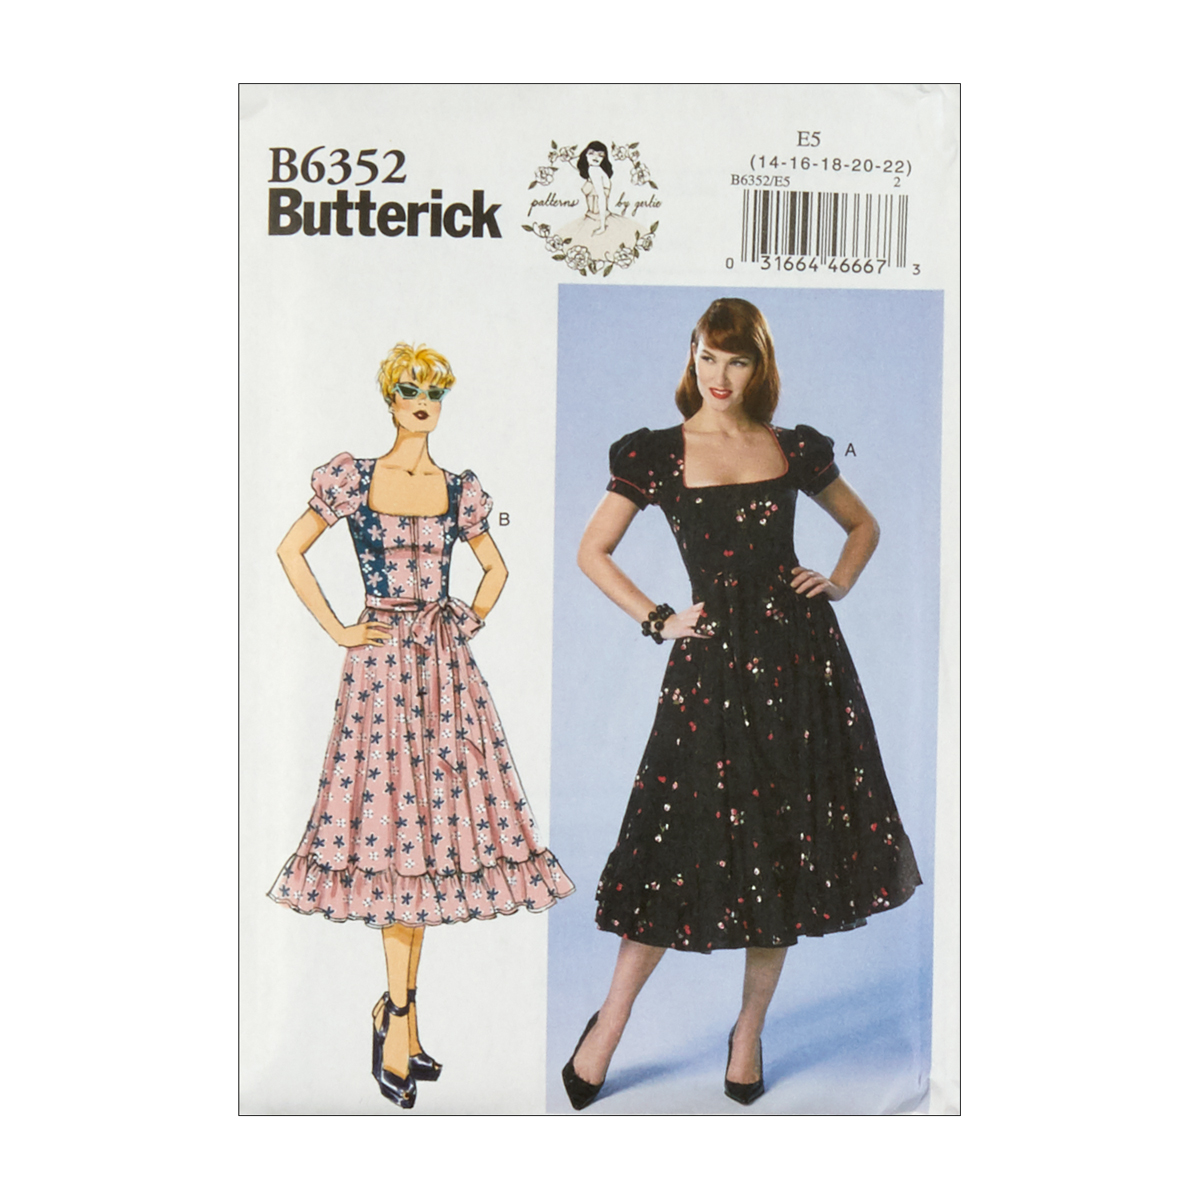 1950s Sewing Patterns | Dresses, Skirts, Tops, Mens Butterick B6352 Patterns by Gertie Petite Square-Neck Puff Sleeve Dresses E5 SZ 14-22 $11.97 AT vintagedancer.com